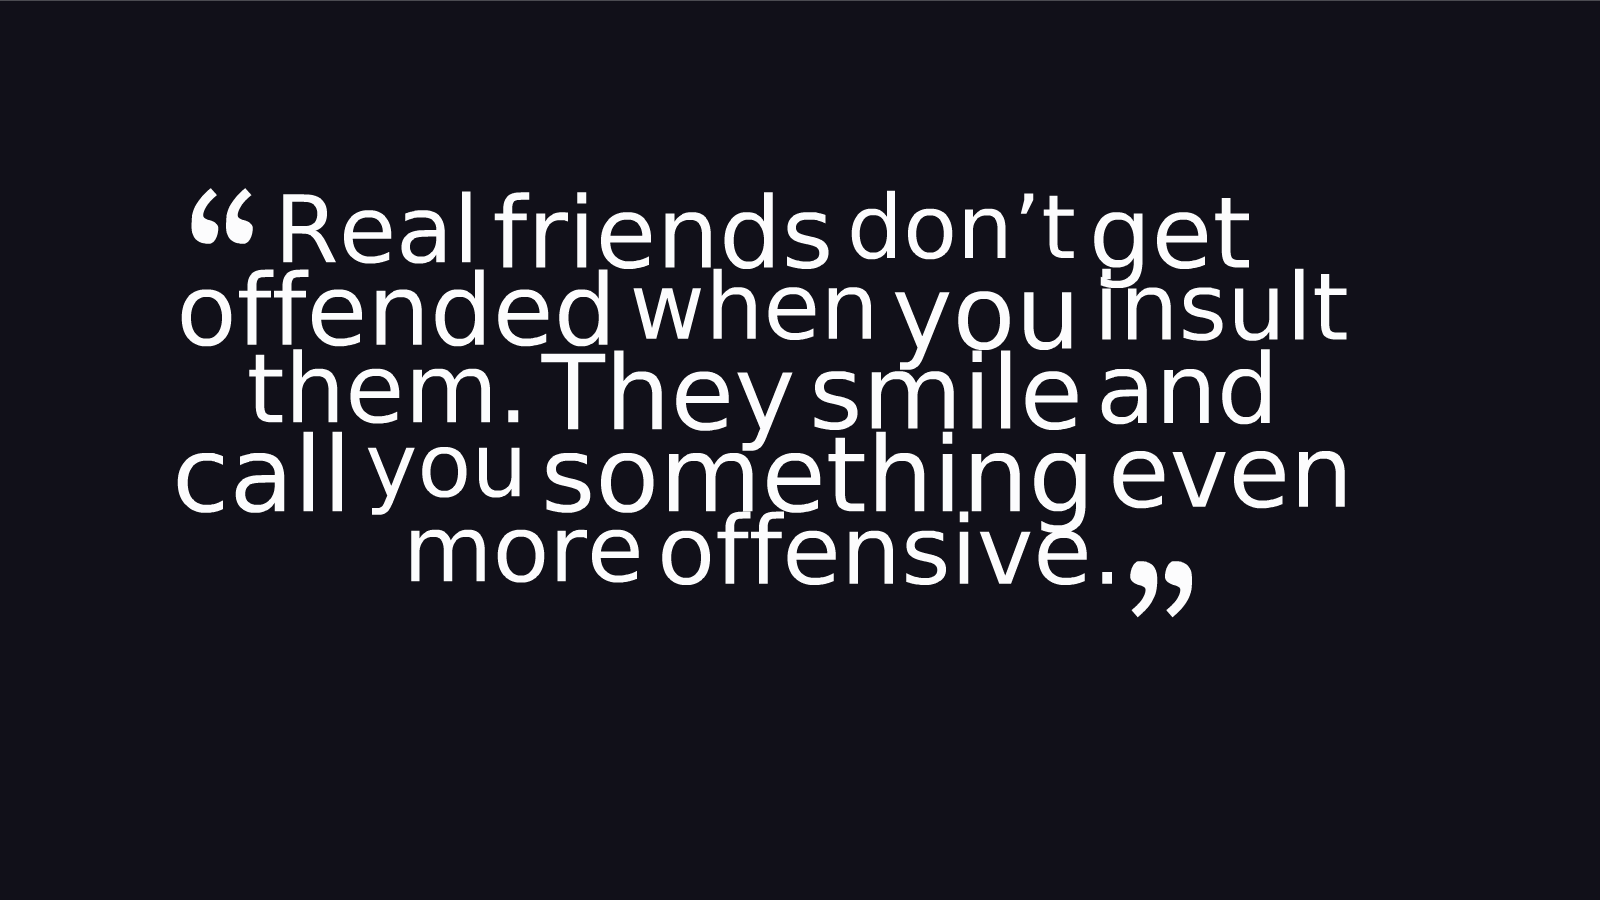 best friendship quotes ohtopten best friendship quotes best friendship quotes